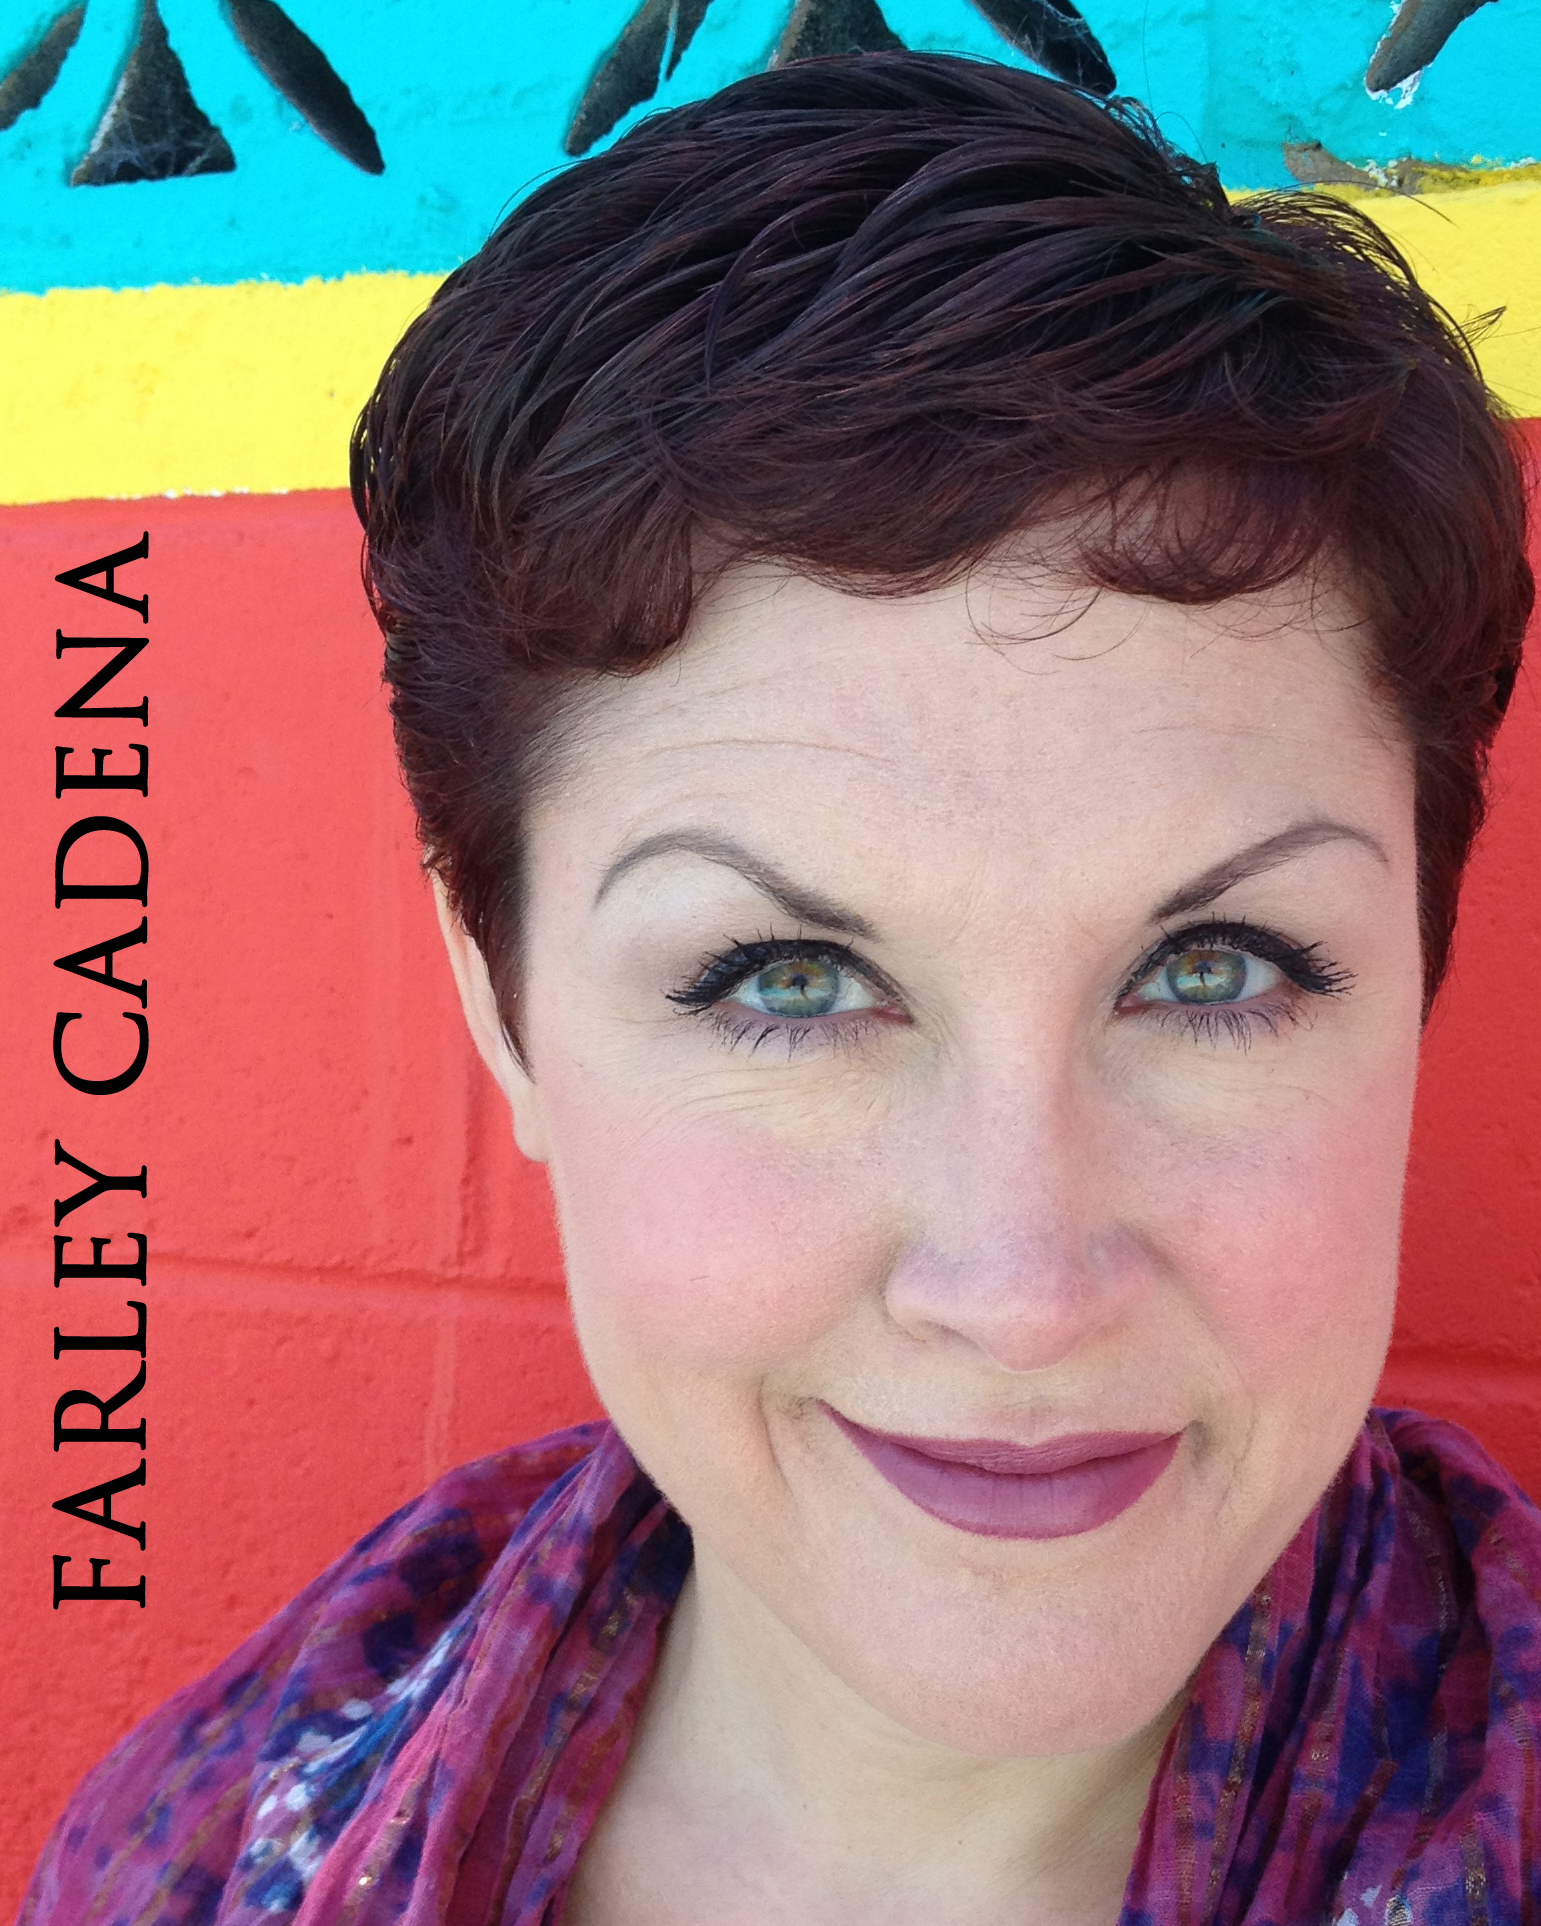 Need a character? Farley's your girl!